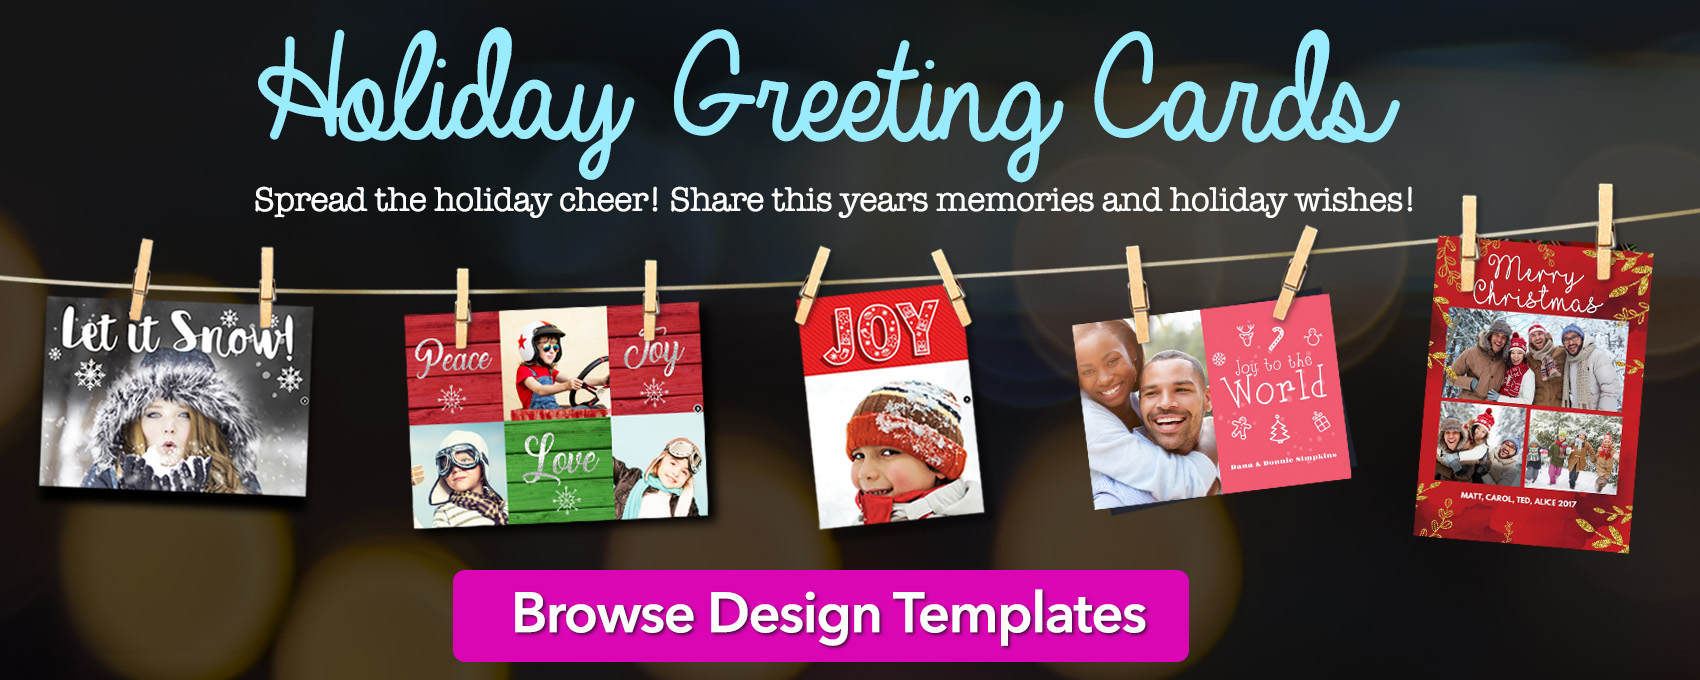 Abc Print Room Holiday Cards